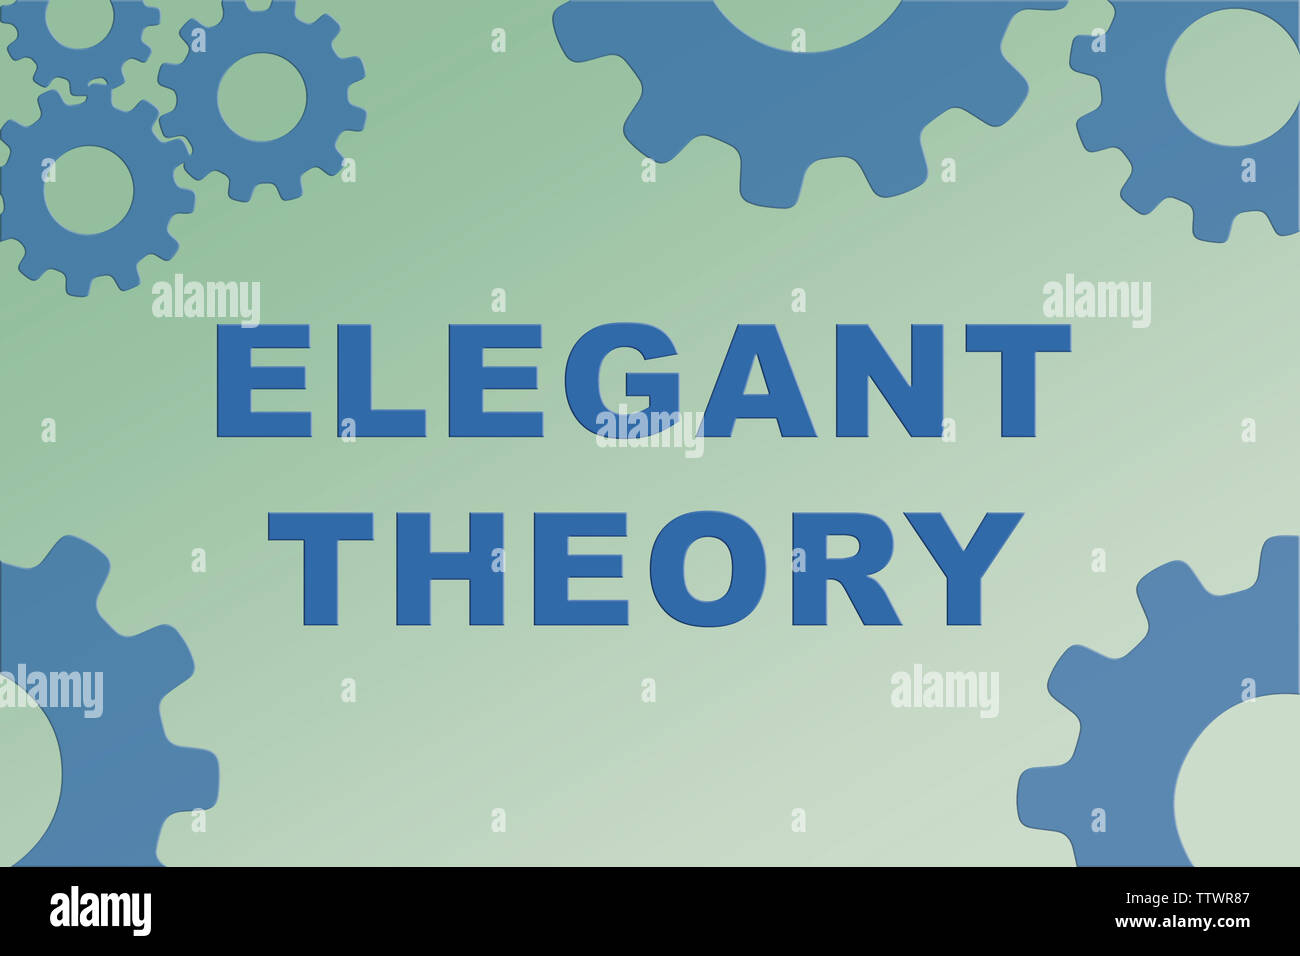 ELEGANT THEORY sign concept illustration with blue gear wheel figures on pale green gradient - Stock Image